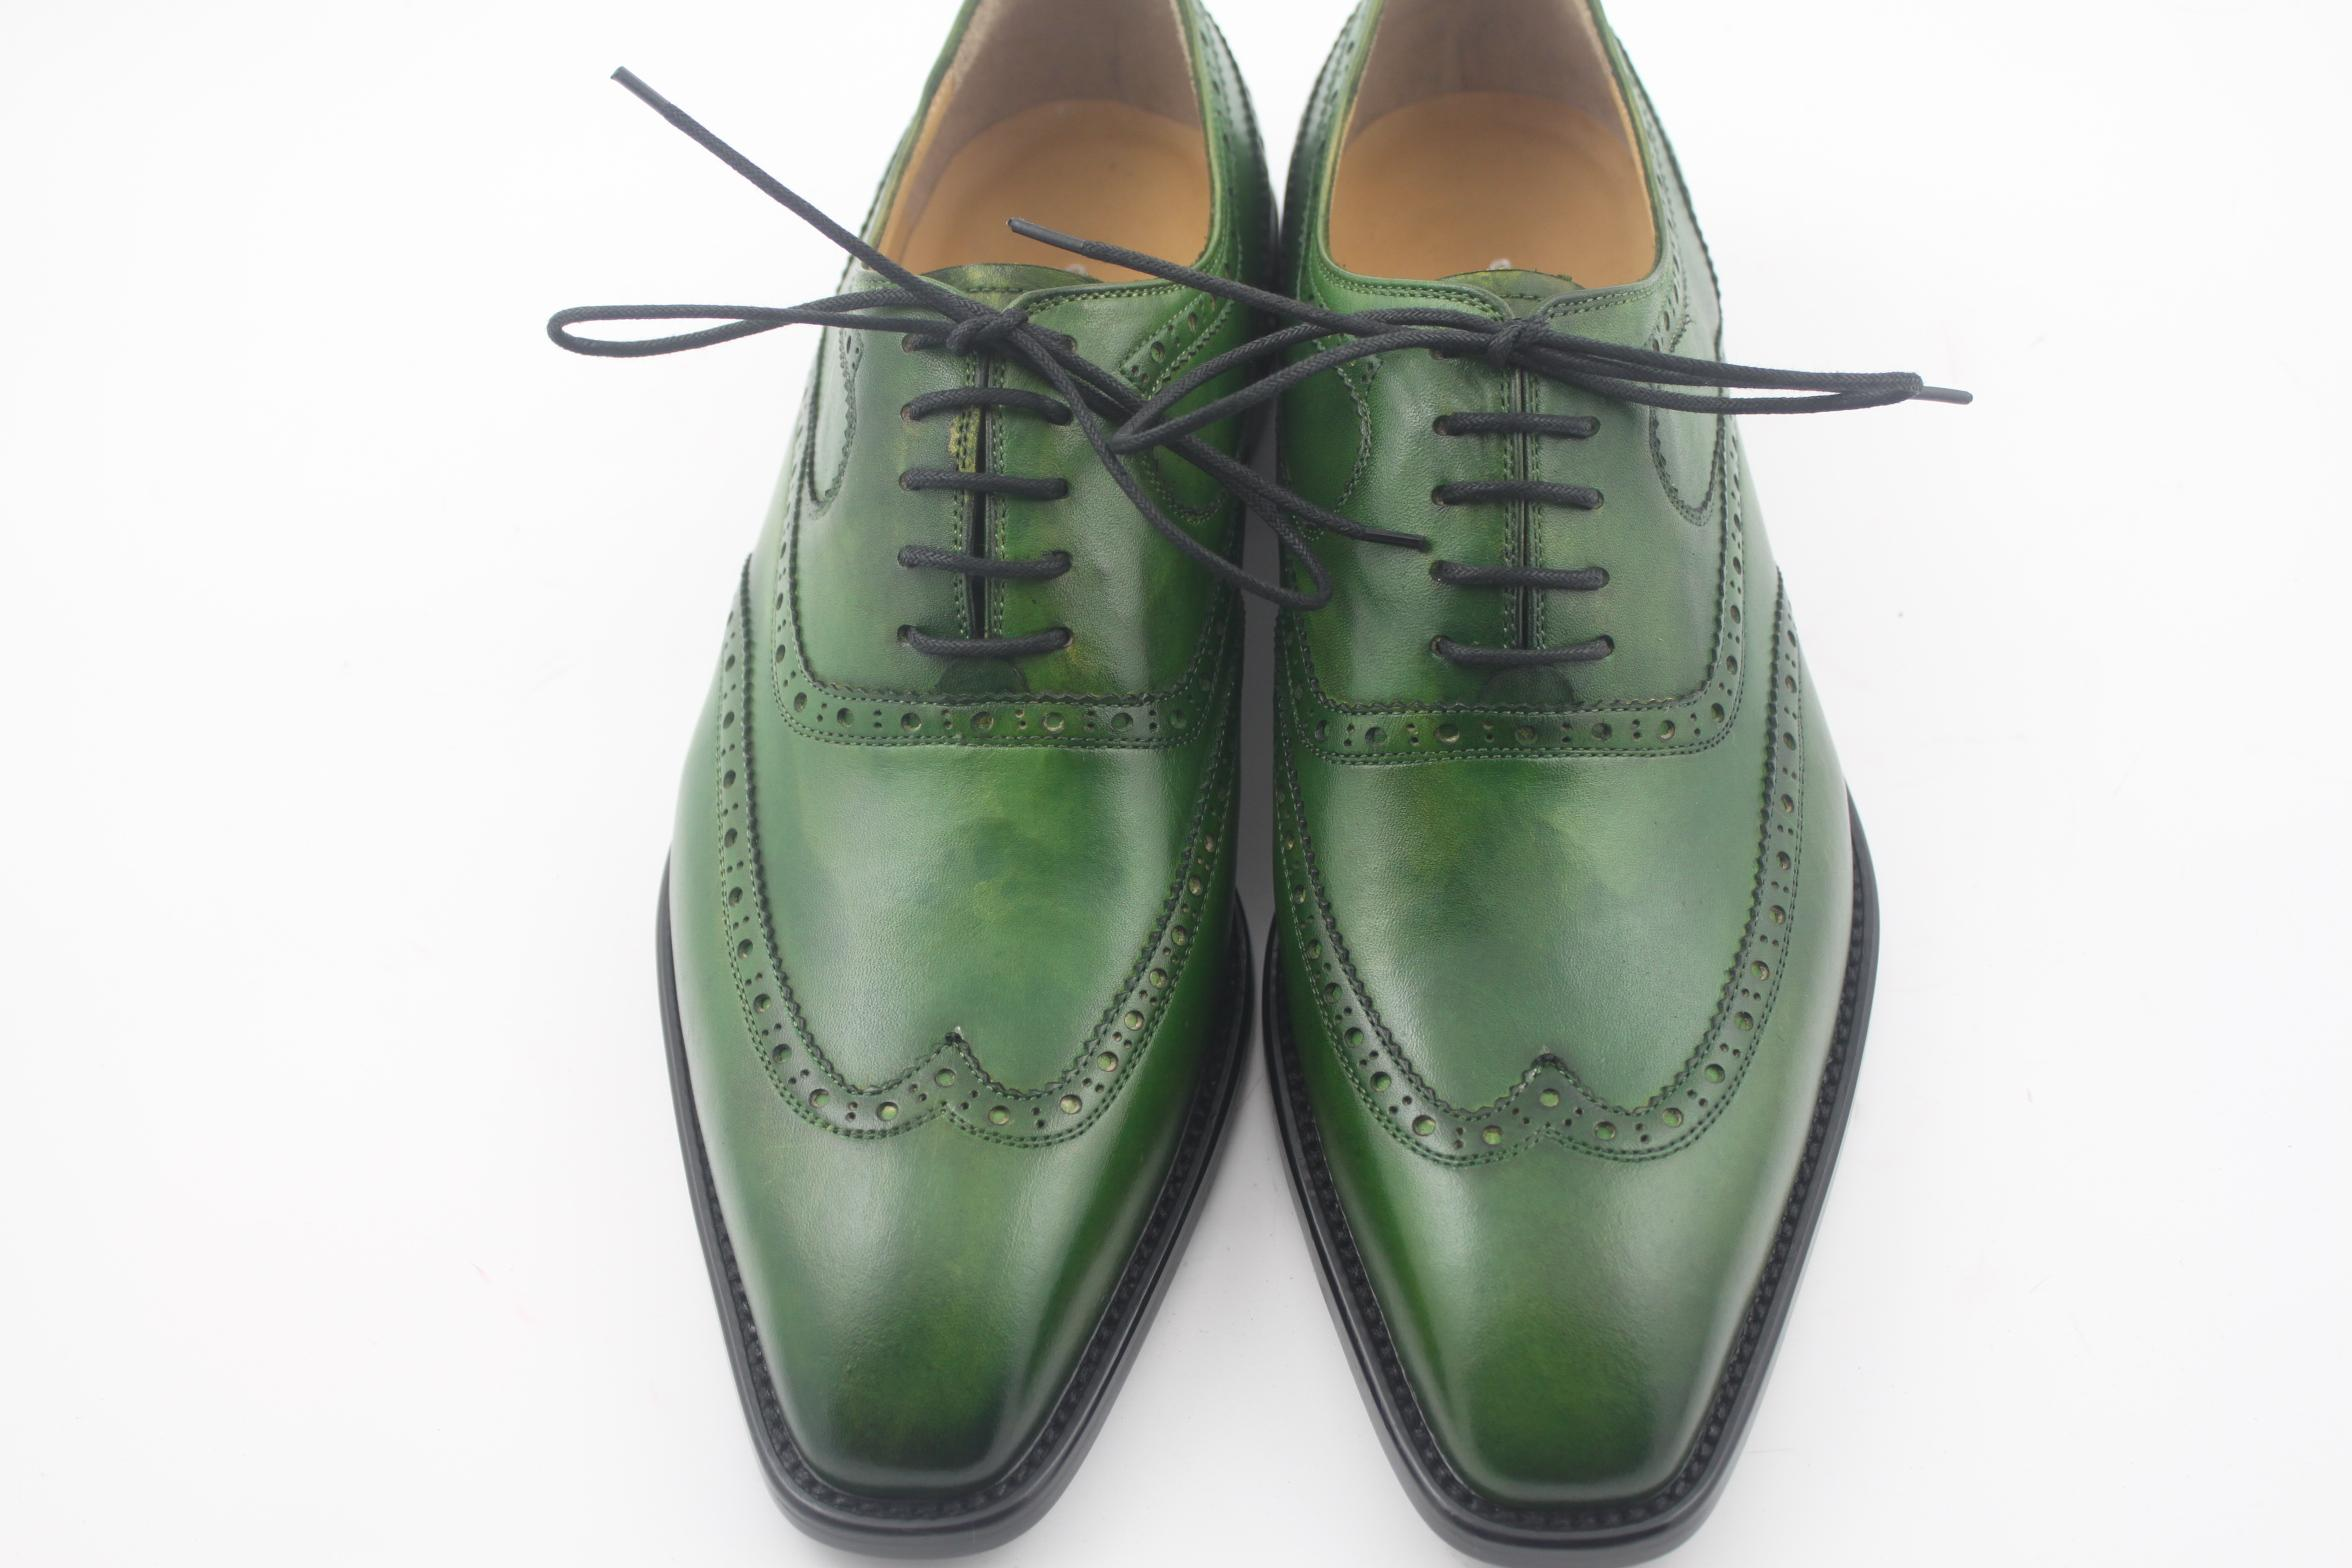 Types Of Leather Dress Shoes